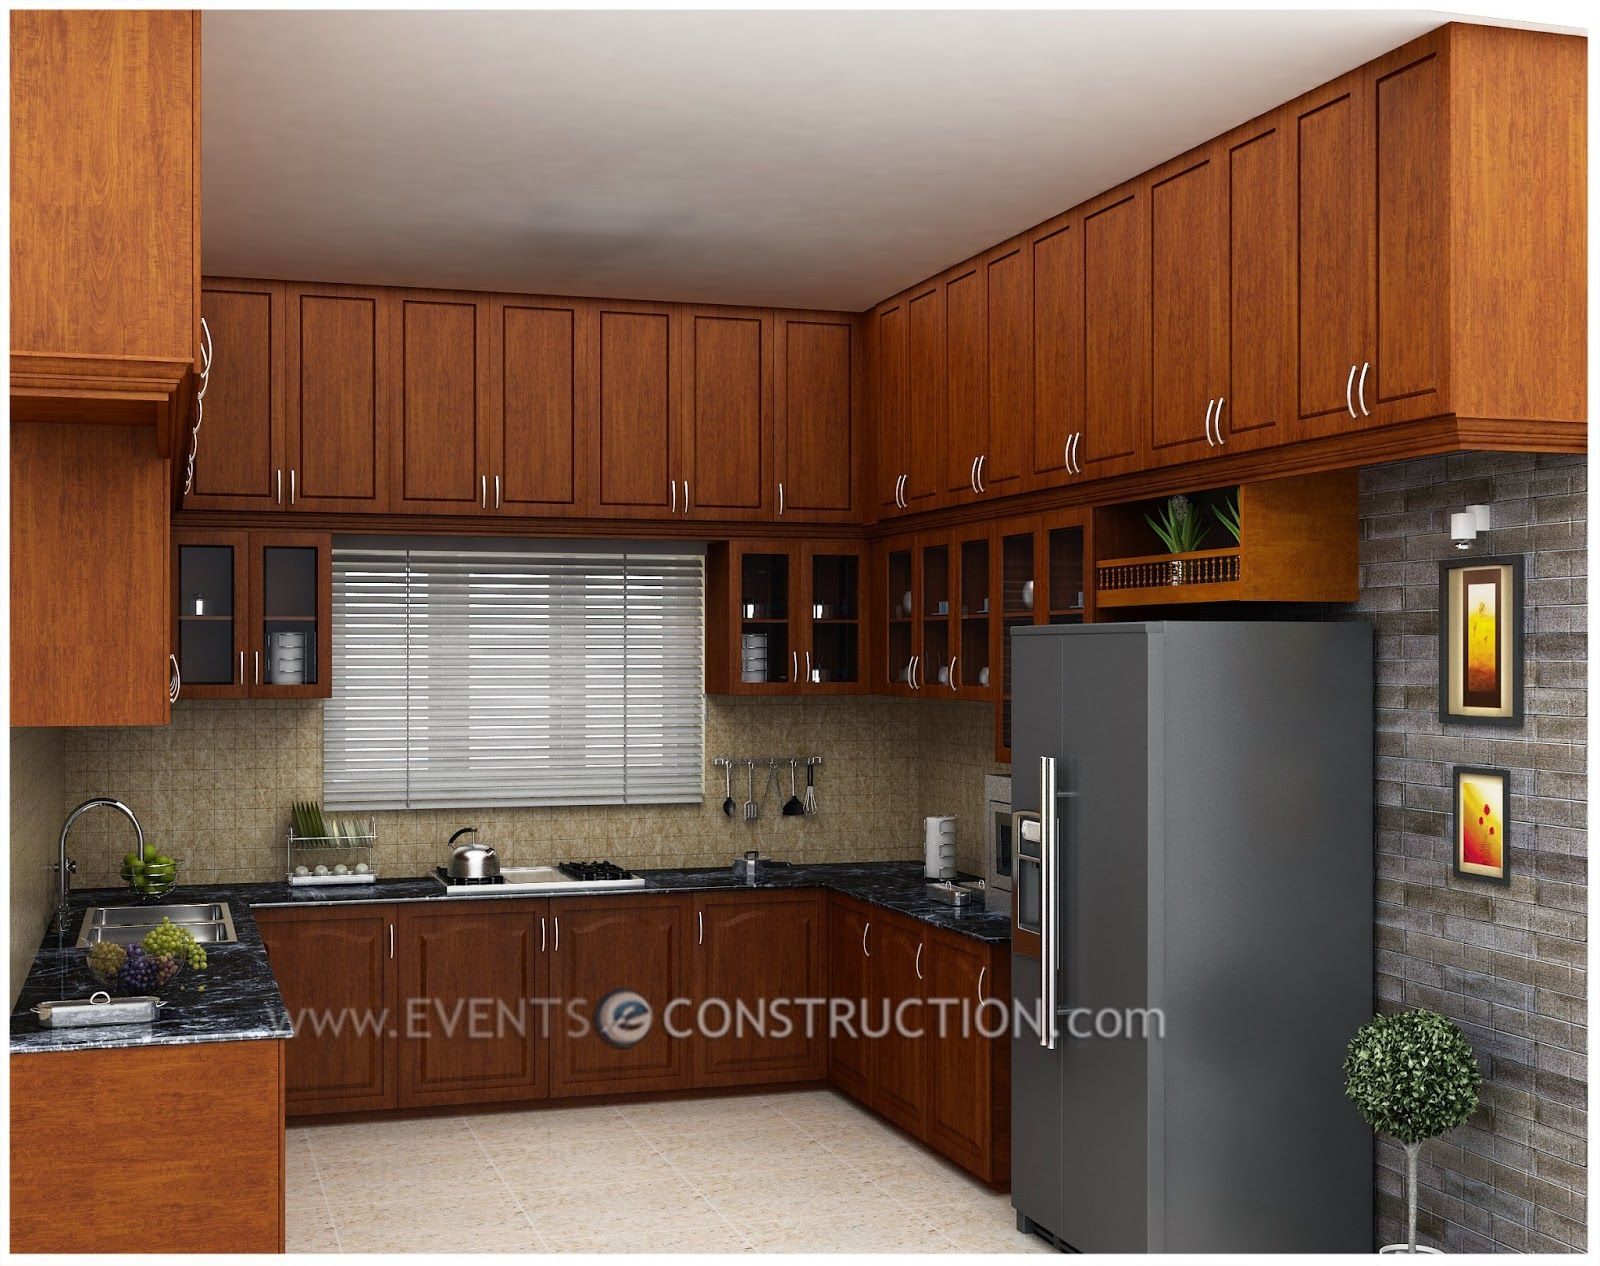 Kitchen interior designs kerala style modular home design for Kerala interior designs